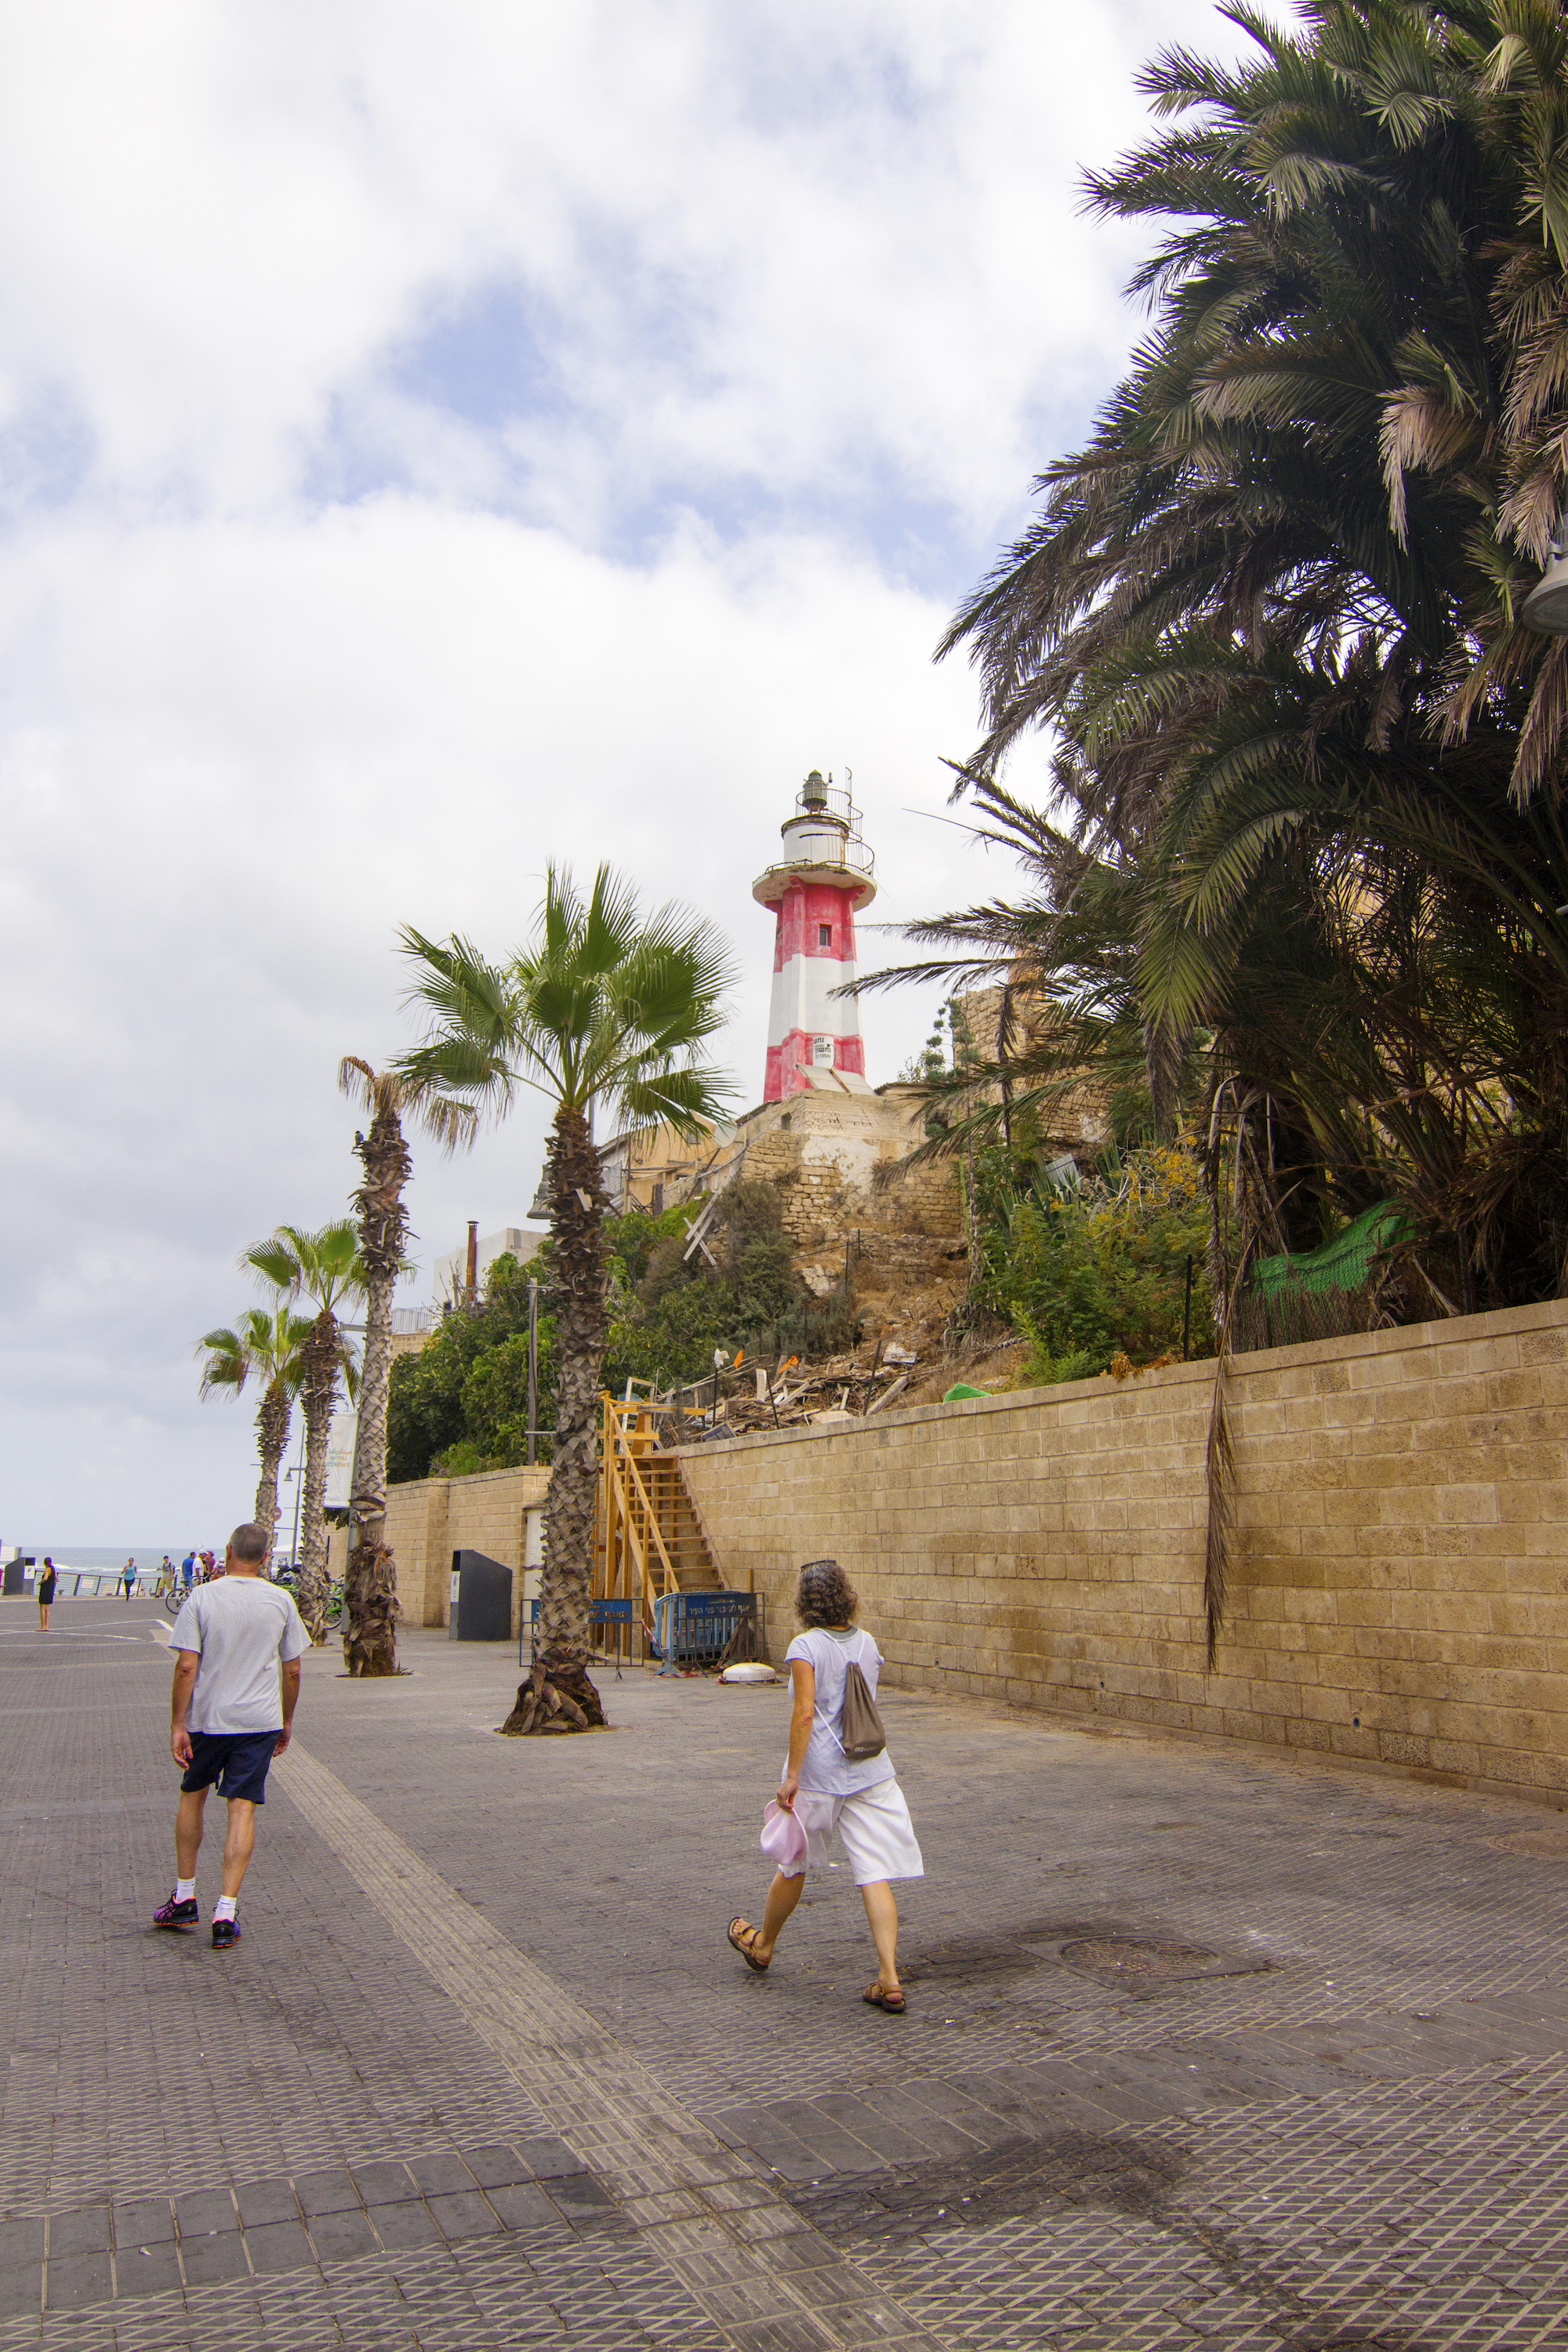 Tel Aviv-Yafo, Israel #travel photography by Geena Matuson @geenamatuson #thegirlmirage at thegirlmirage.com.